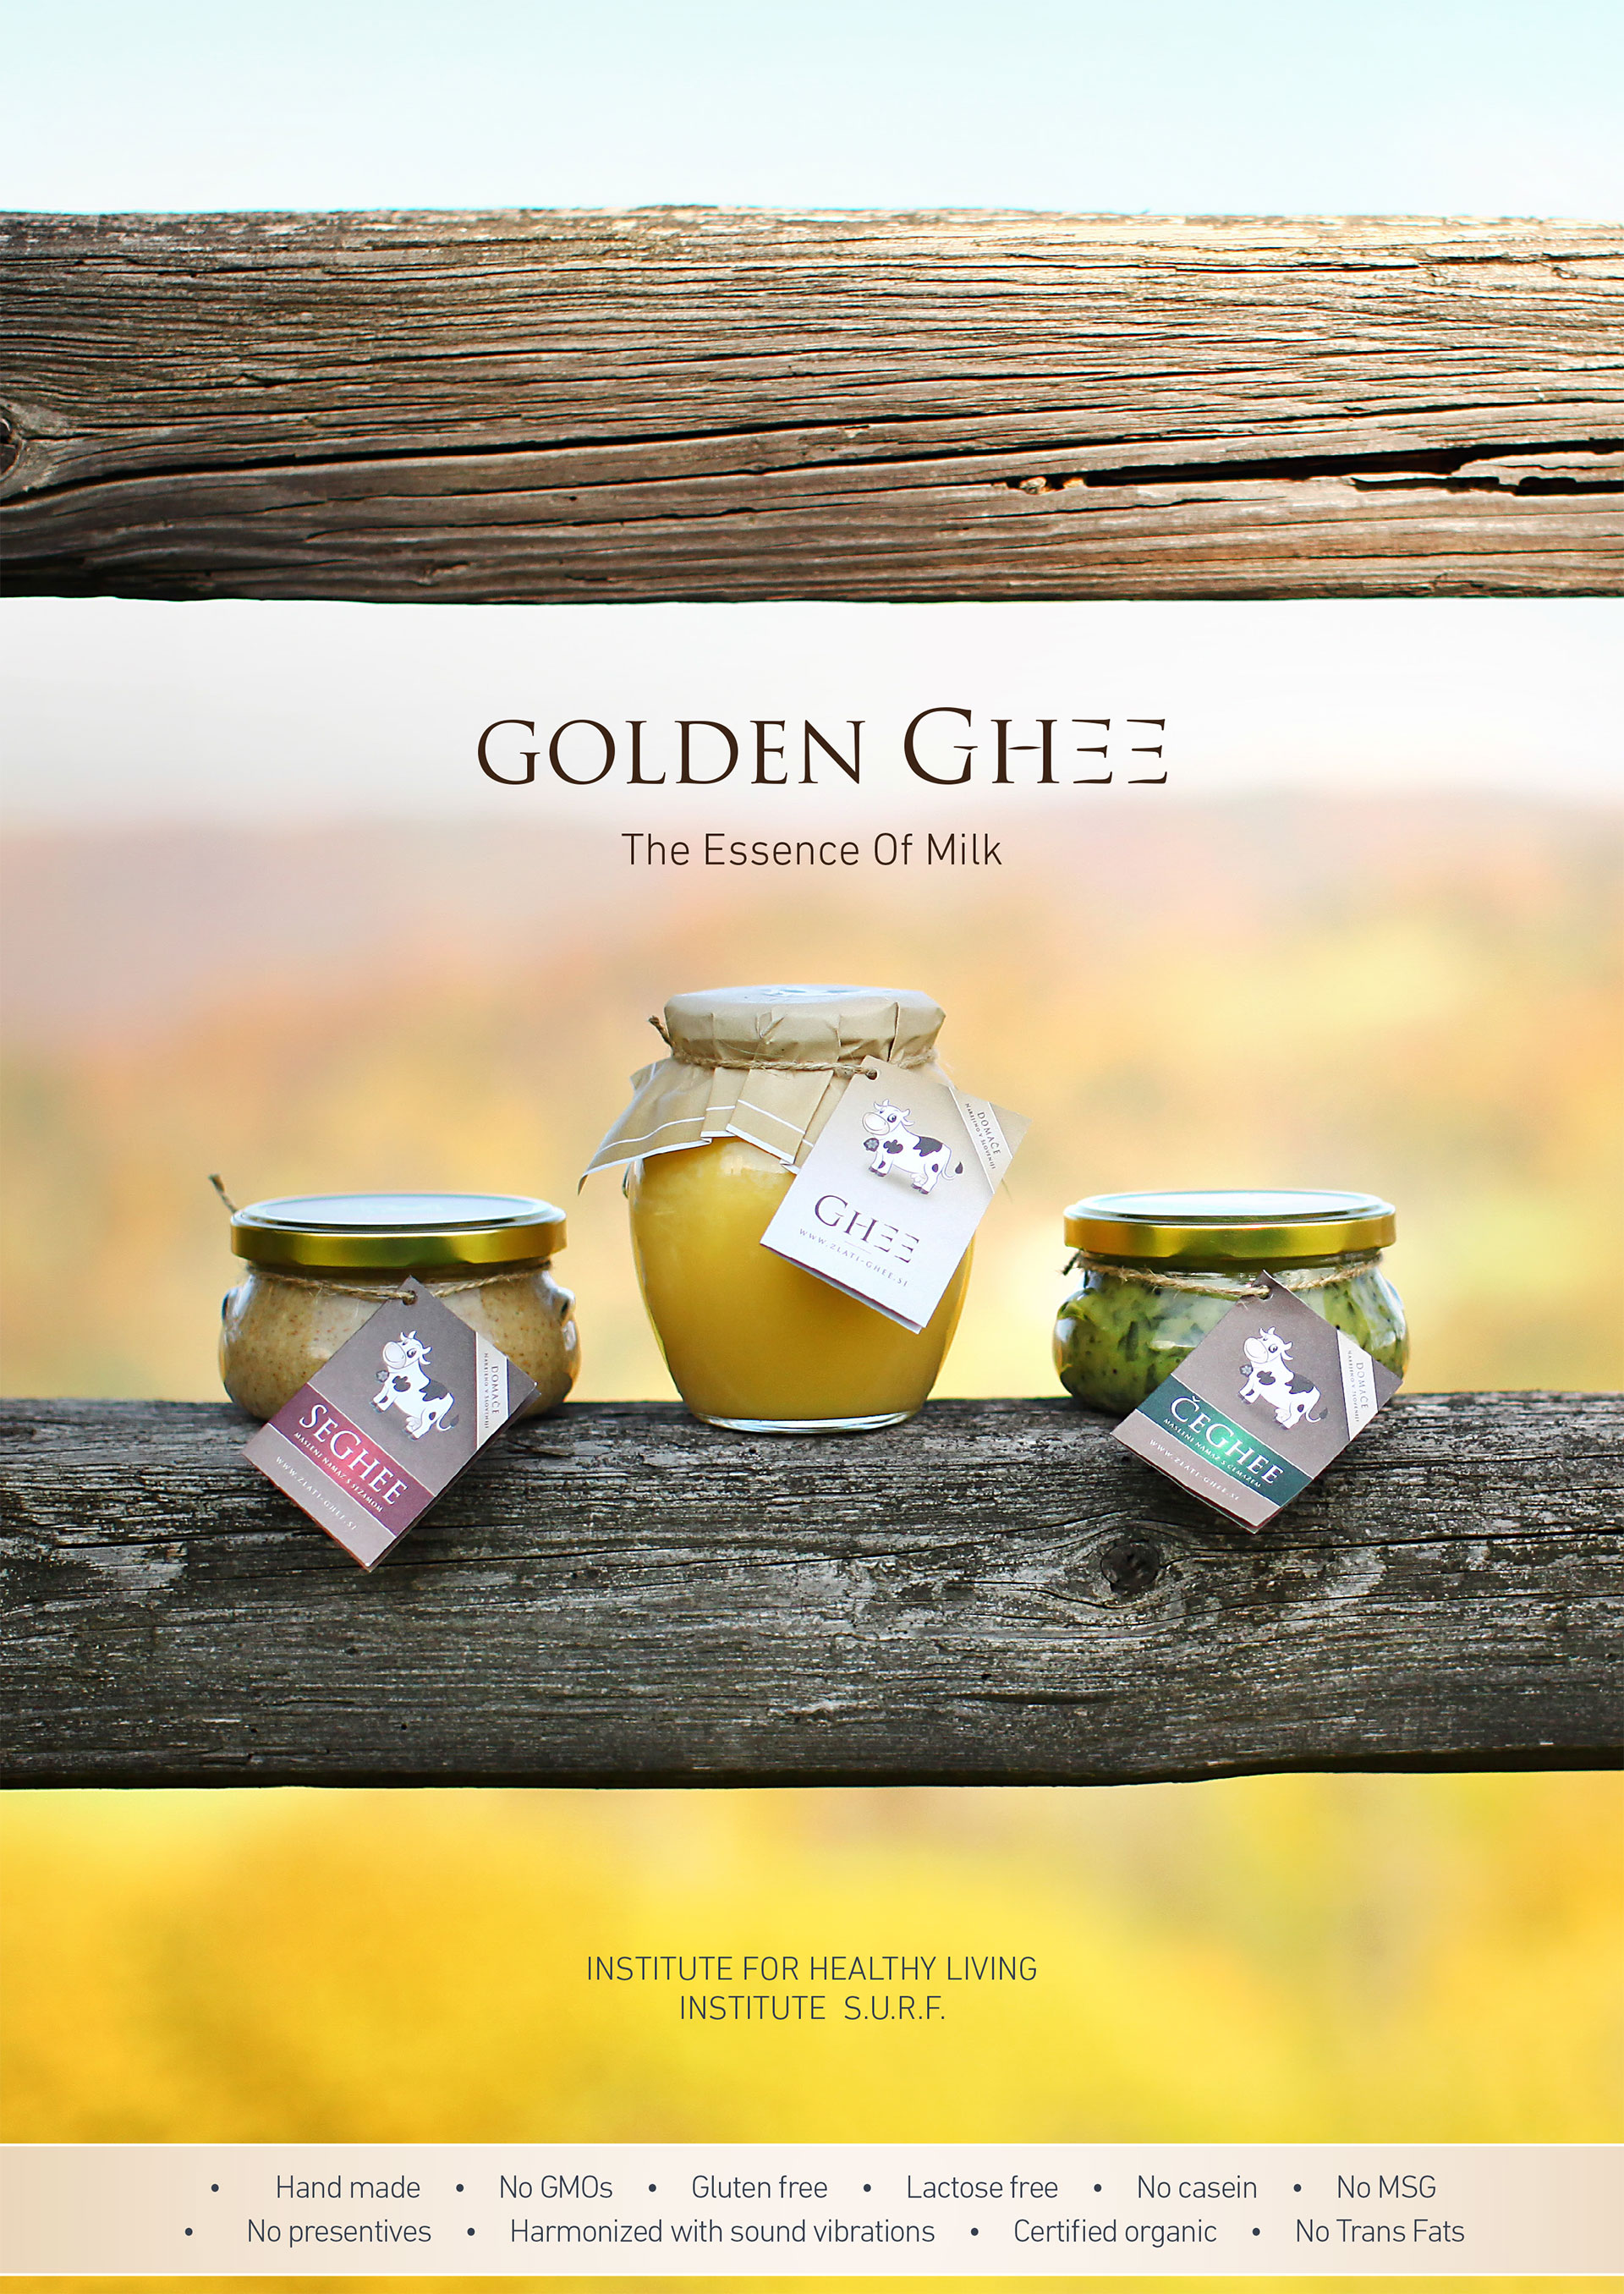 Golden Ghee the essence of milk